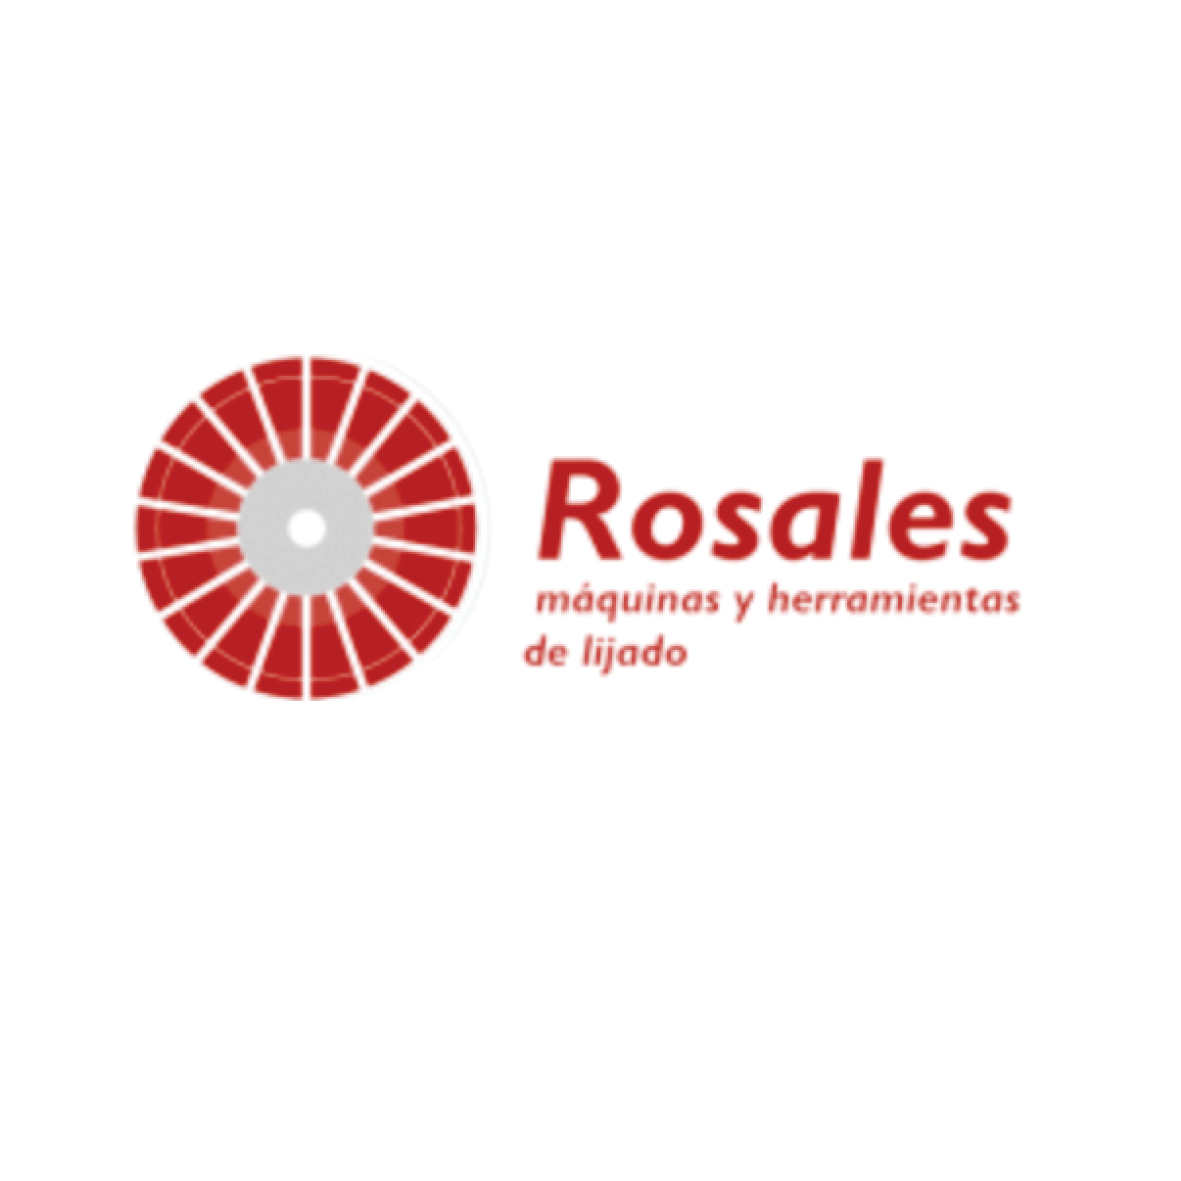 Rosales we are manufacturer of sanding moldings. For over a quarter century of activity, we managed to position ourselves as a leader in our segment in Spain and in major international markets.